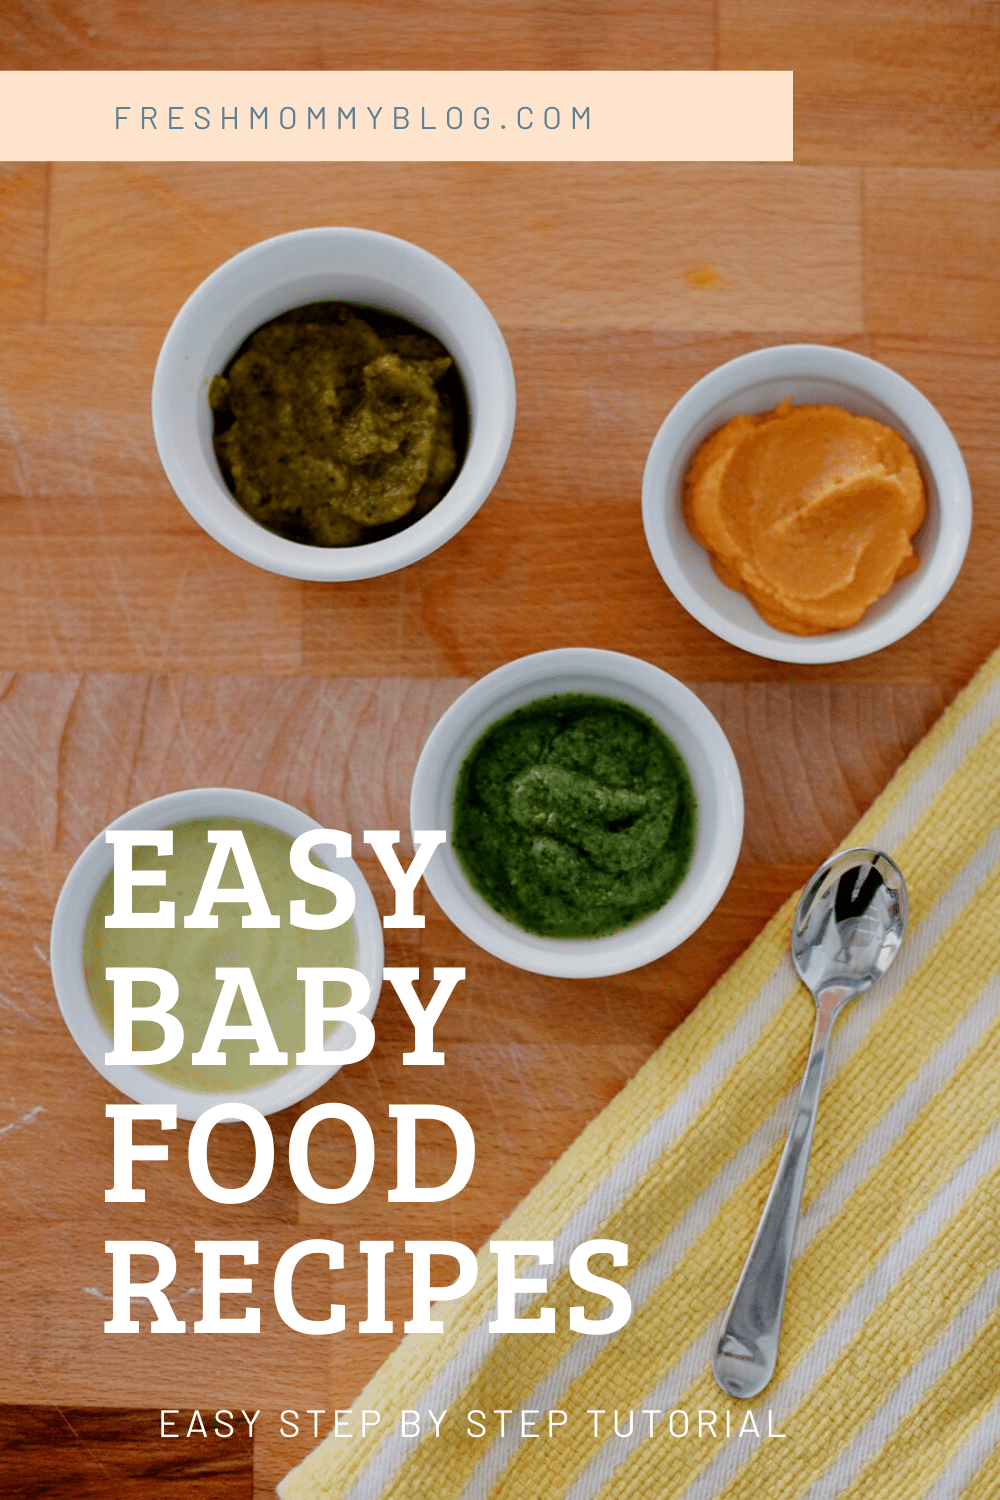 Simple and Healthy Homemade Baby Food Recipes